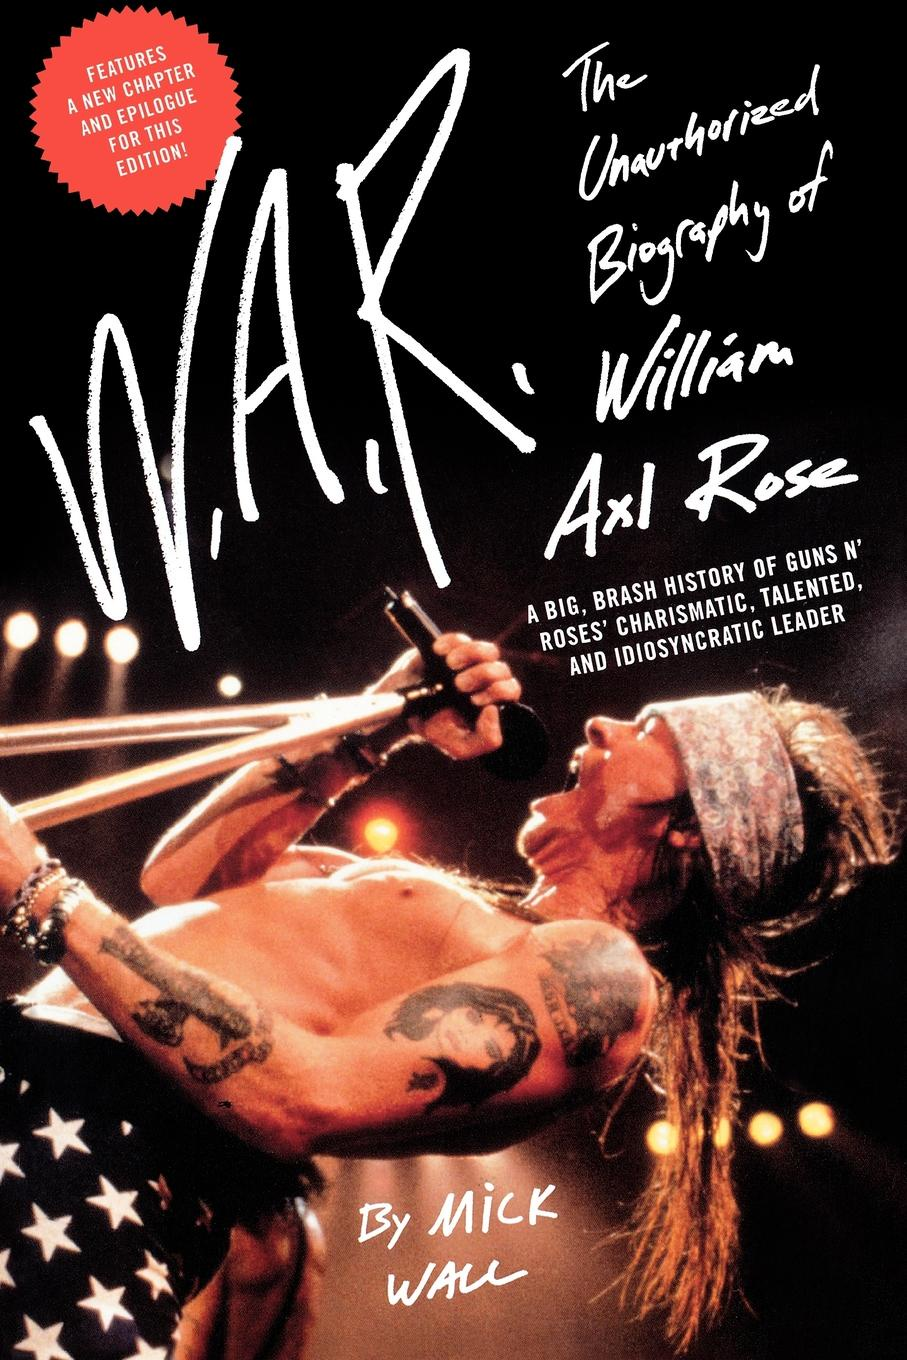 Mick Wall W.A.R. The Unauthorized Biography of William Axl Rose axl usa sro artist off white